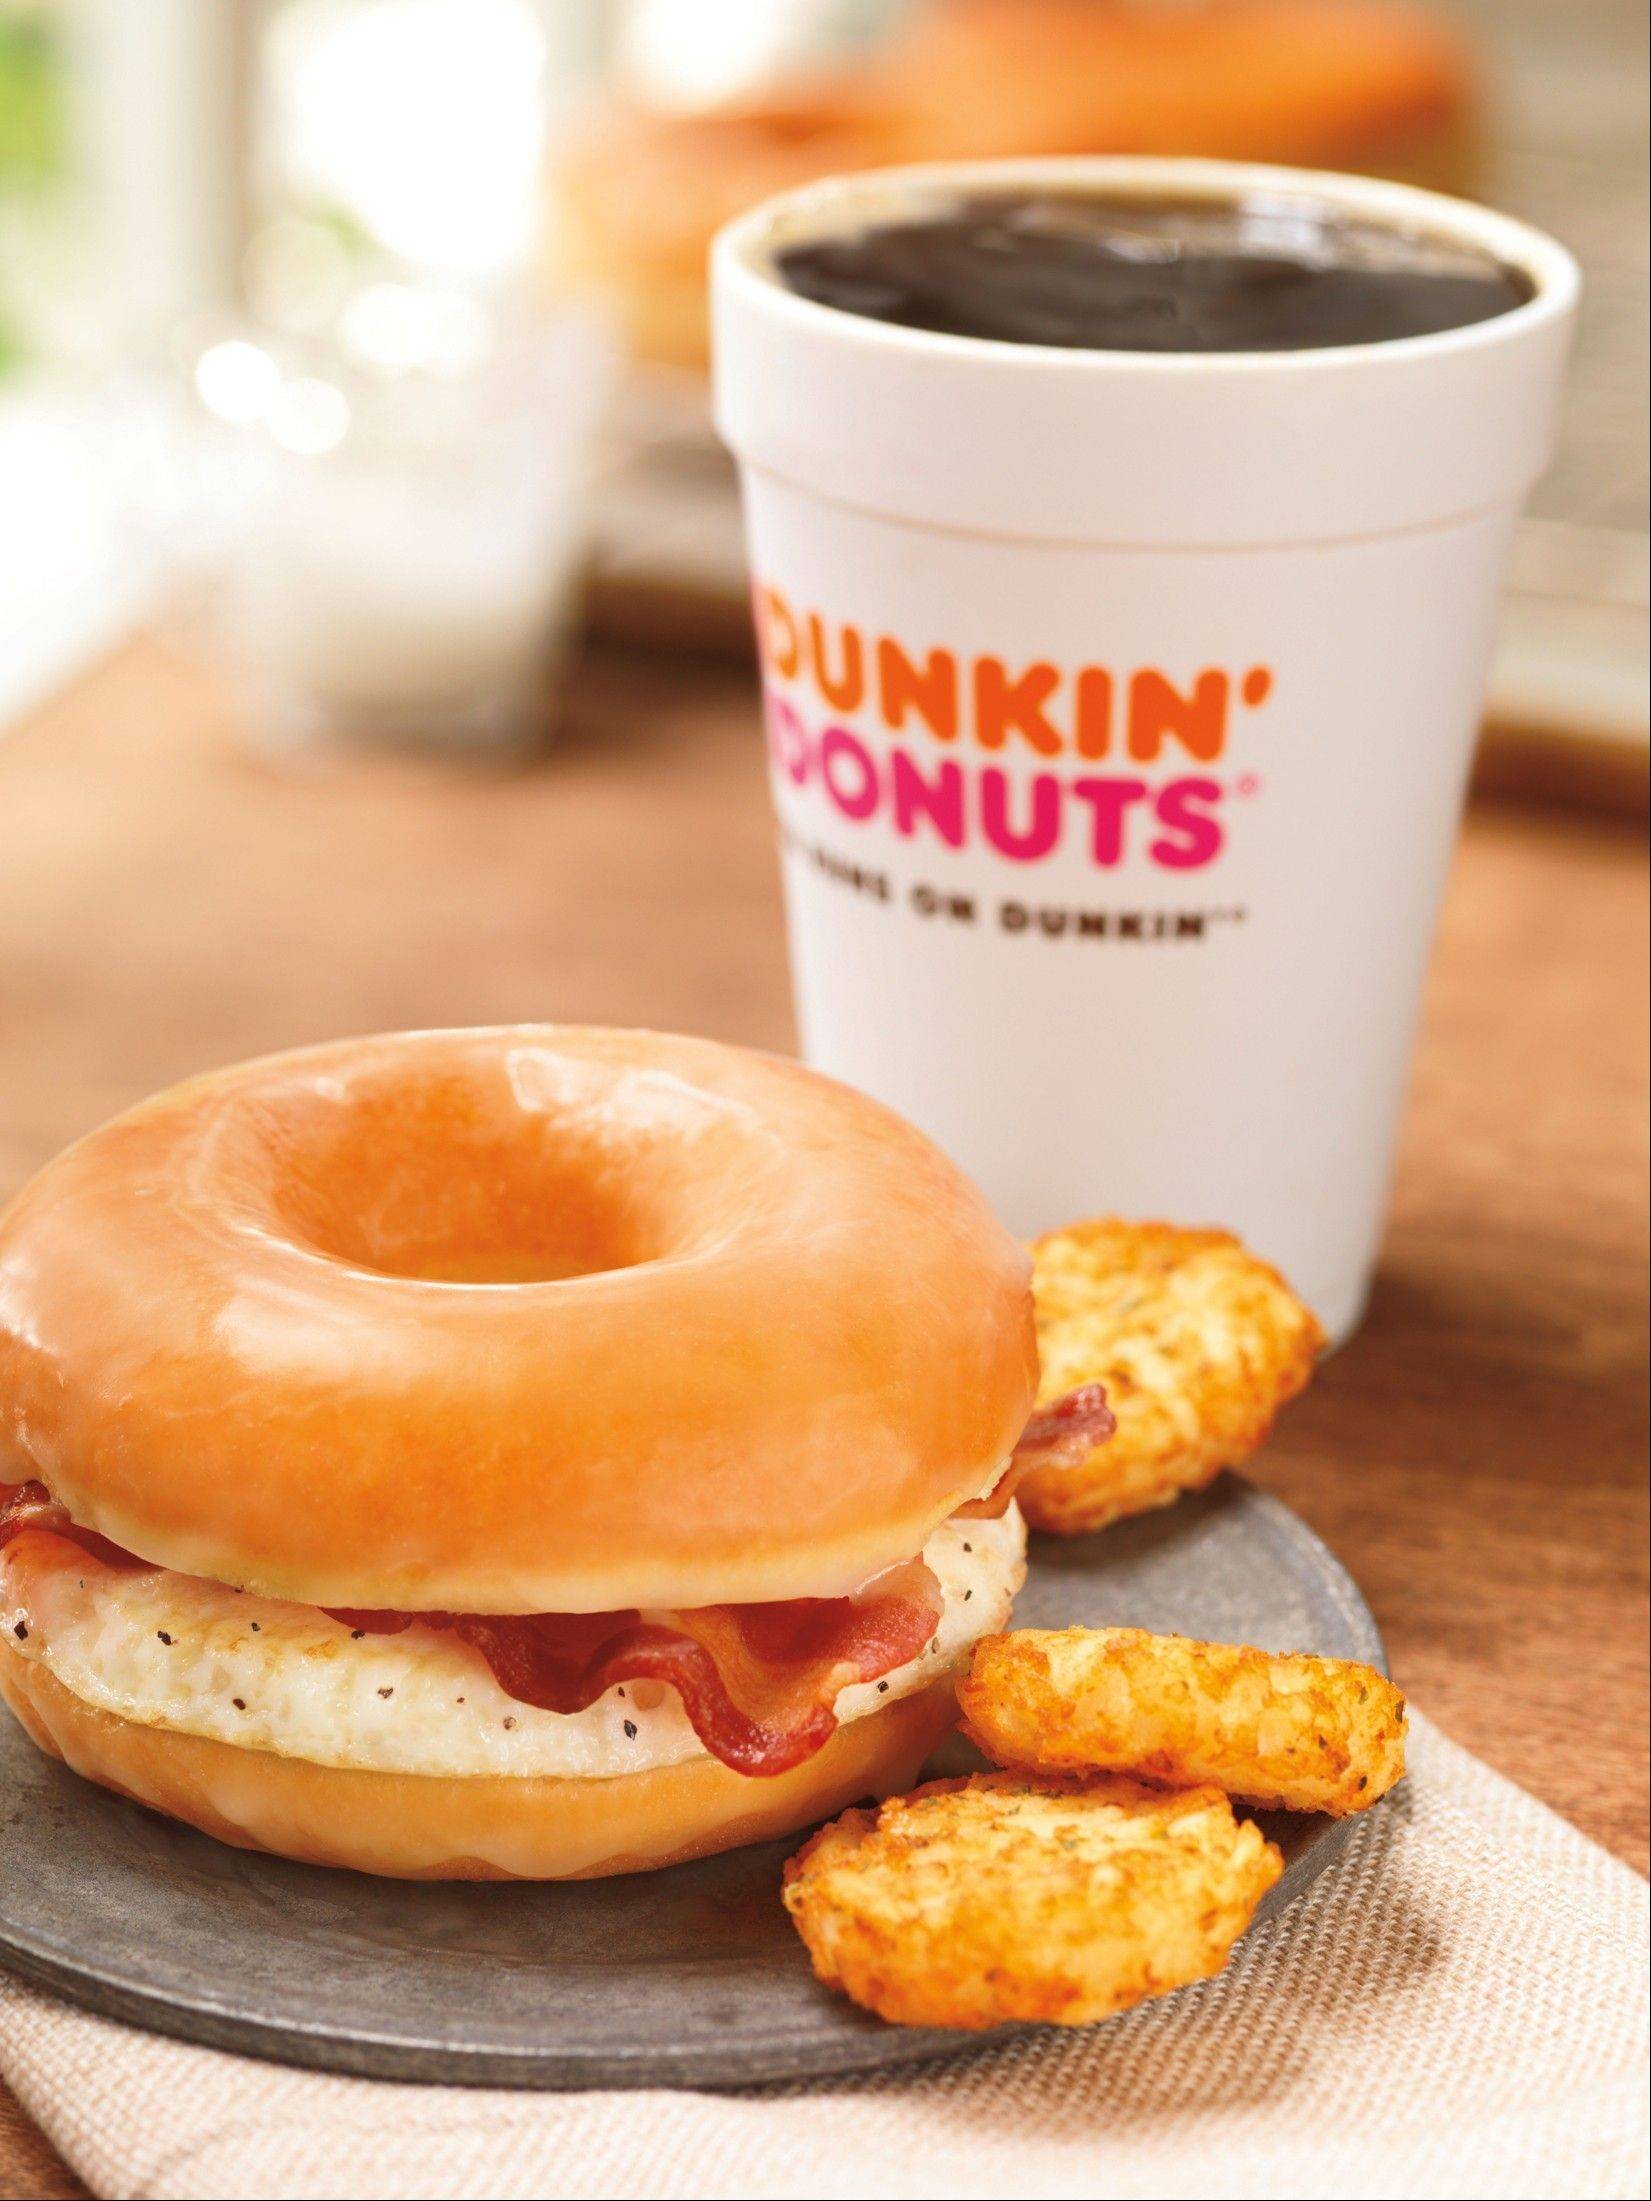 Dunkin' Donuts' glazed donut breakfast sandwich. Even as fast-food chains tout their healthy offerings, they're also coming up with fatty new treats to keep customers interested.